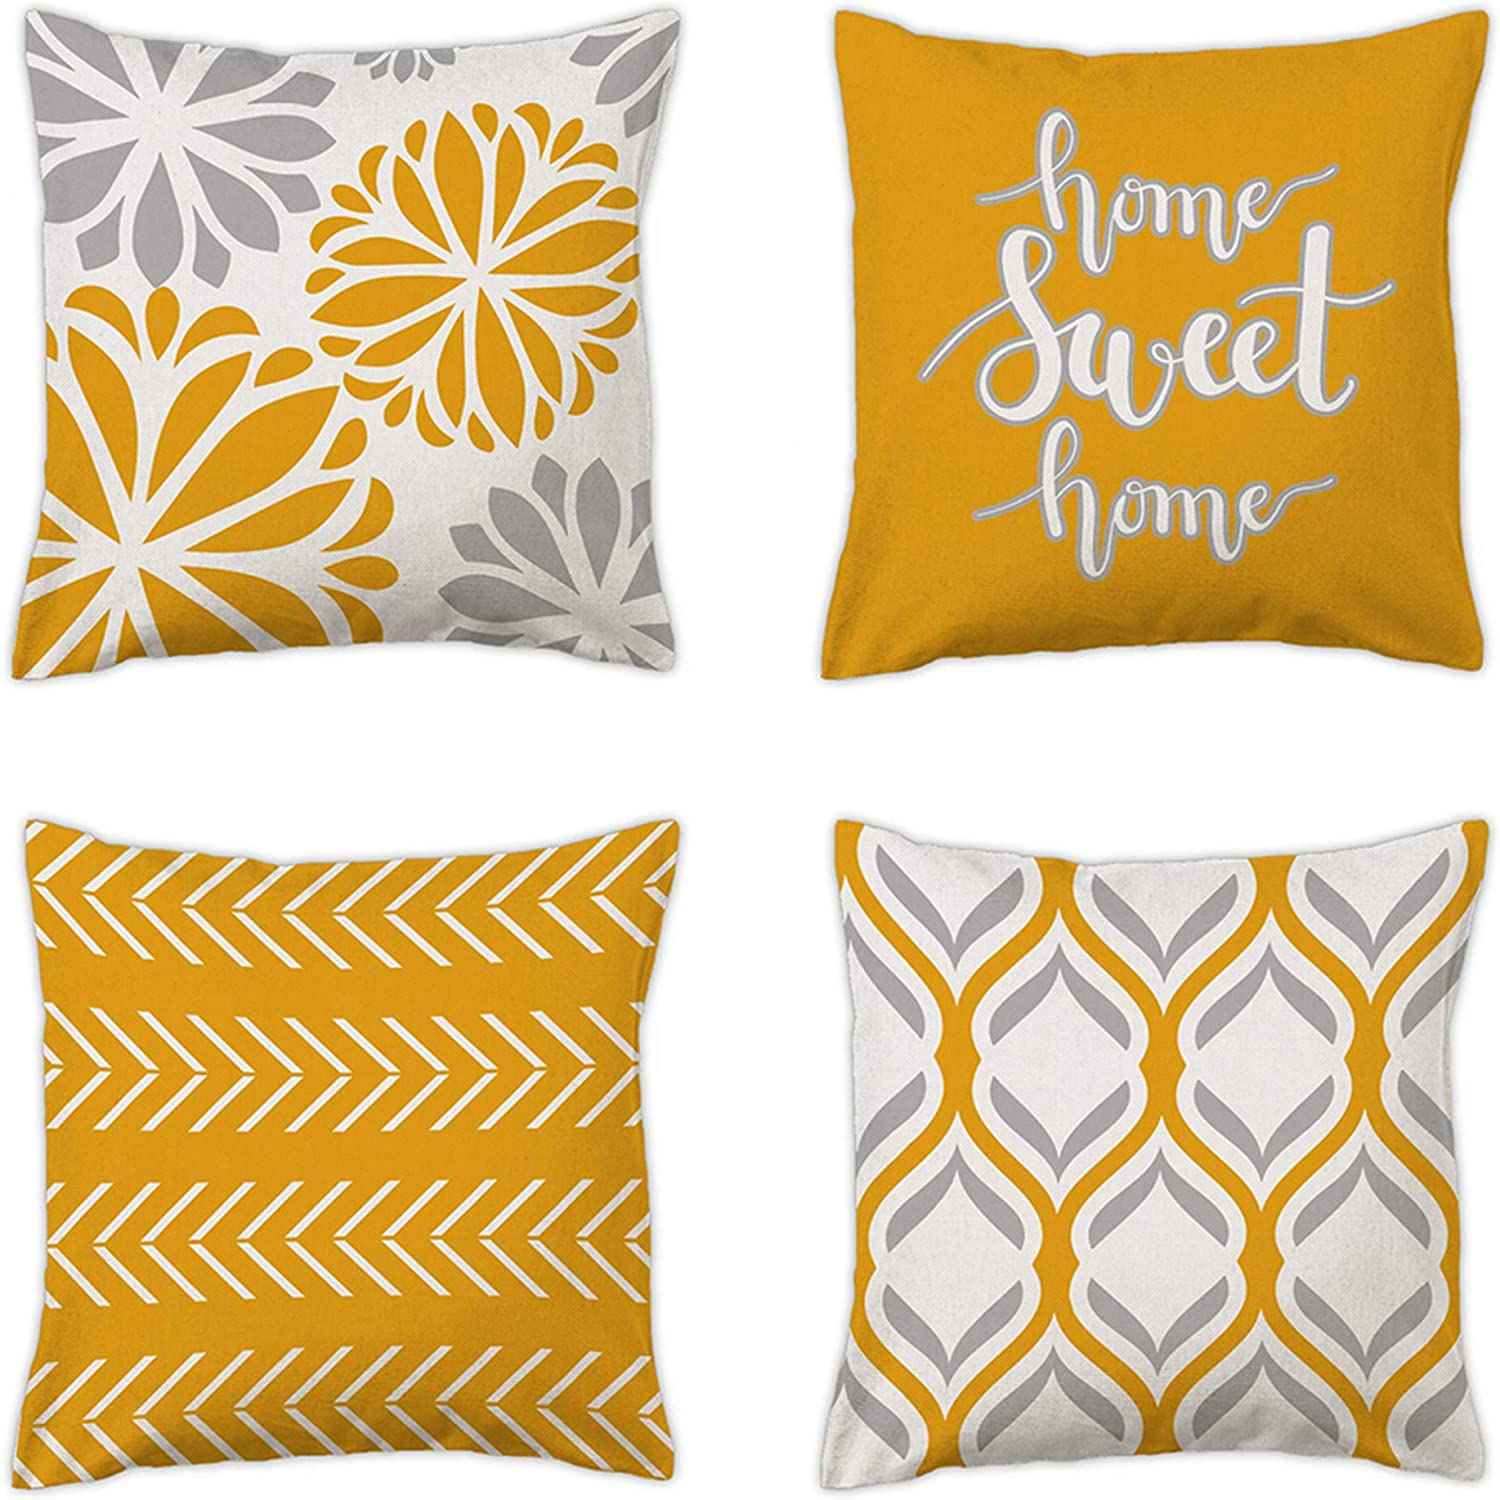 pinata Yellow Pillow Covers 18 x 18 Inch Set of 4, Modern Sofa Couch Decorative Yellow and Gray Throw Pillow Covers, Cotton Linen Geometric Outdoor Pillow Case for Patio Furniture, Yellow Home Decor